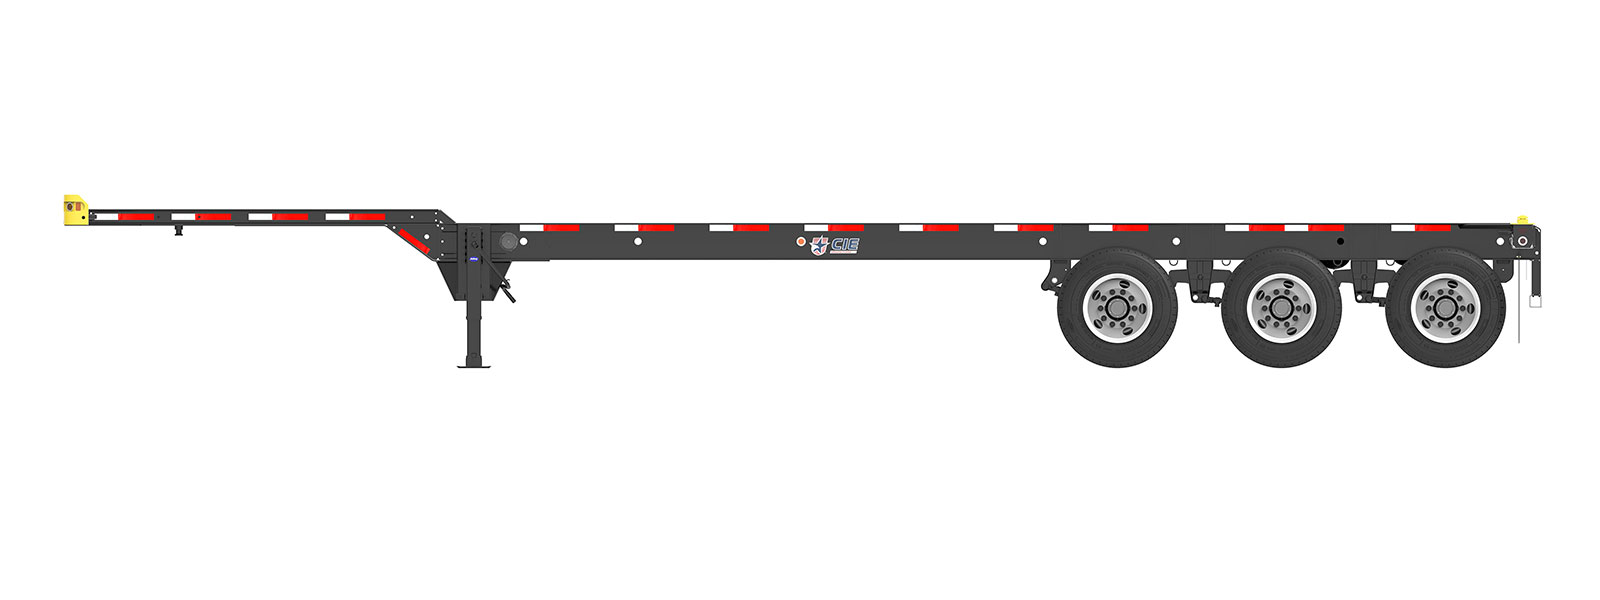 40' Gooseneck Tridem Container Chassis Orthographic Side View Final